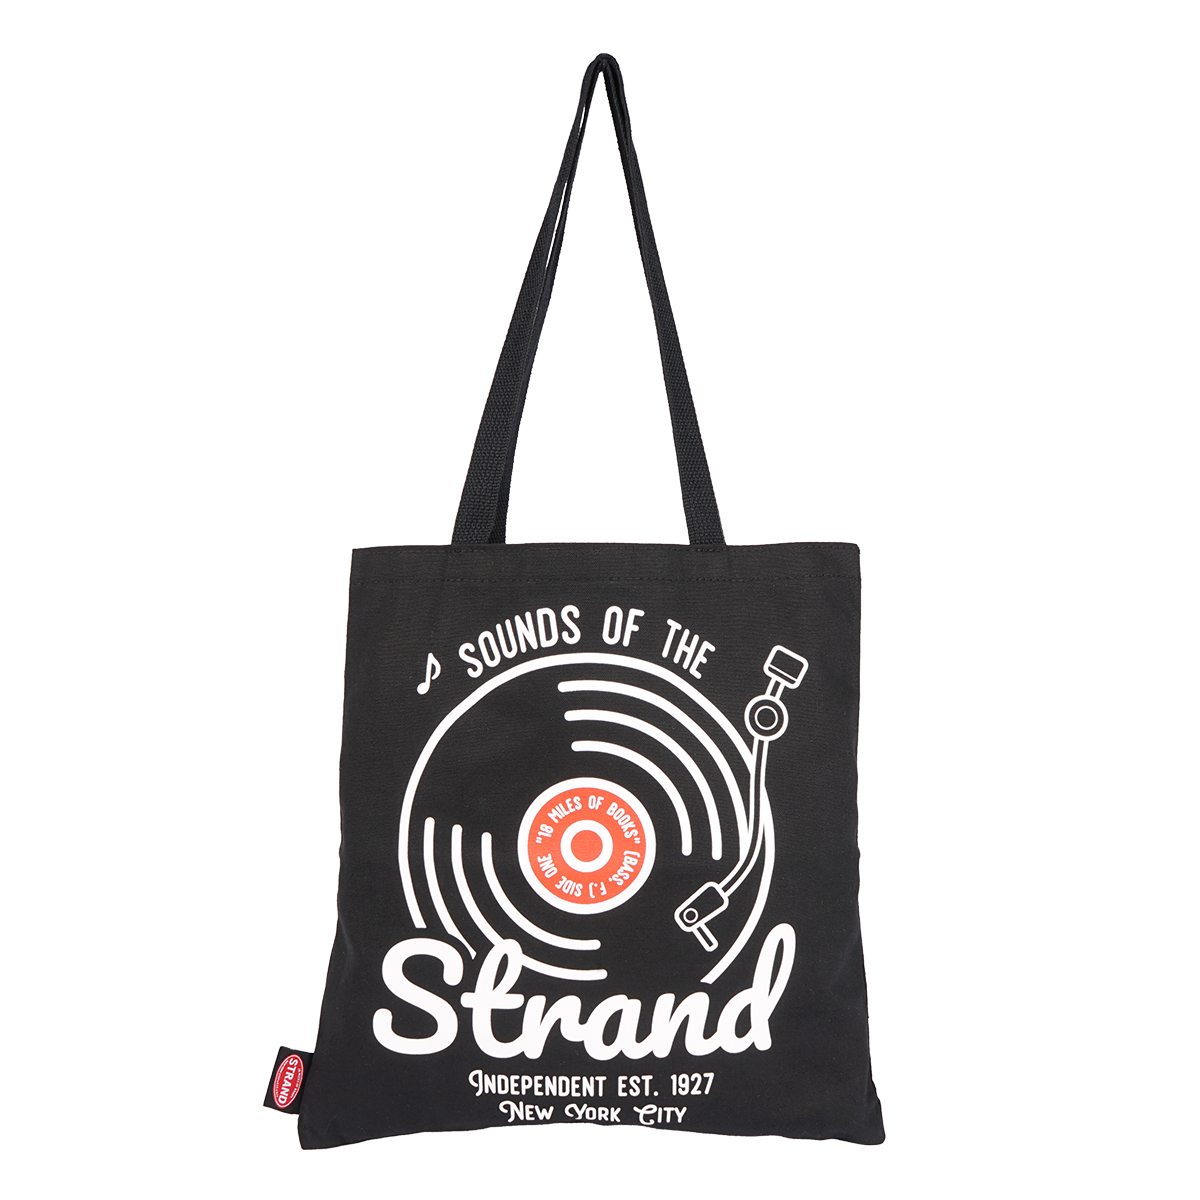 【STRANDBOOKSTORE】Tote Sounds of the Strand トートバッグ S (BLACK) 2900012581895